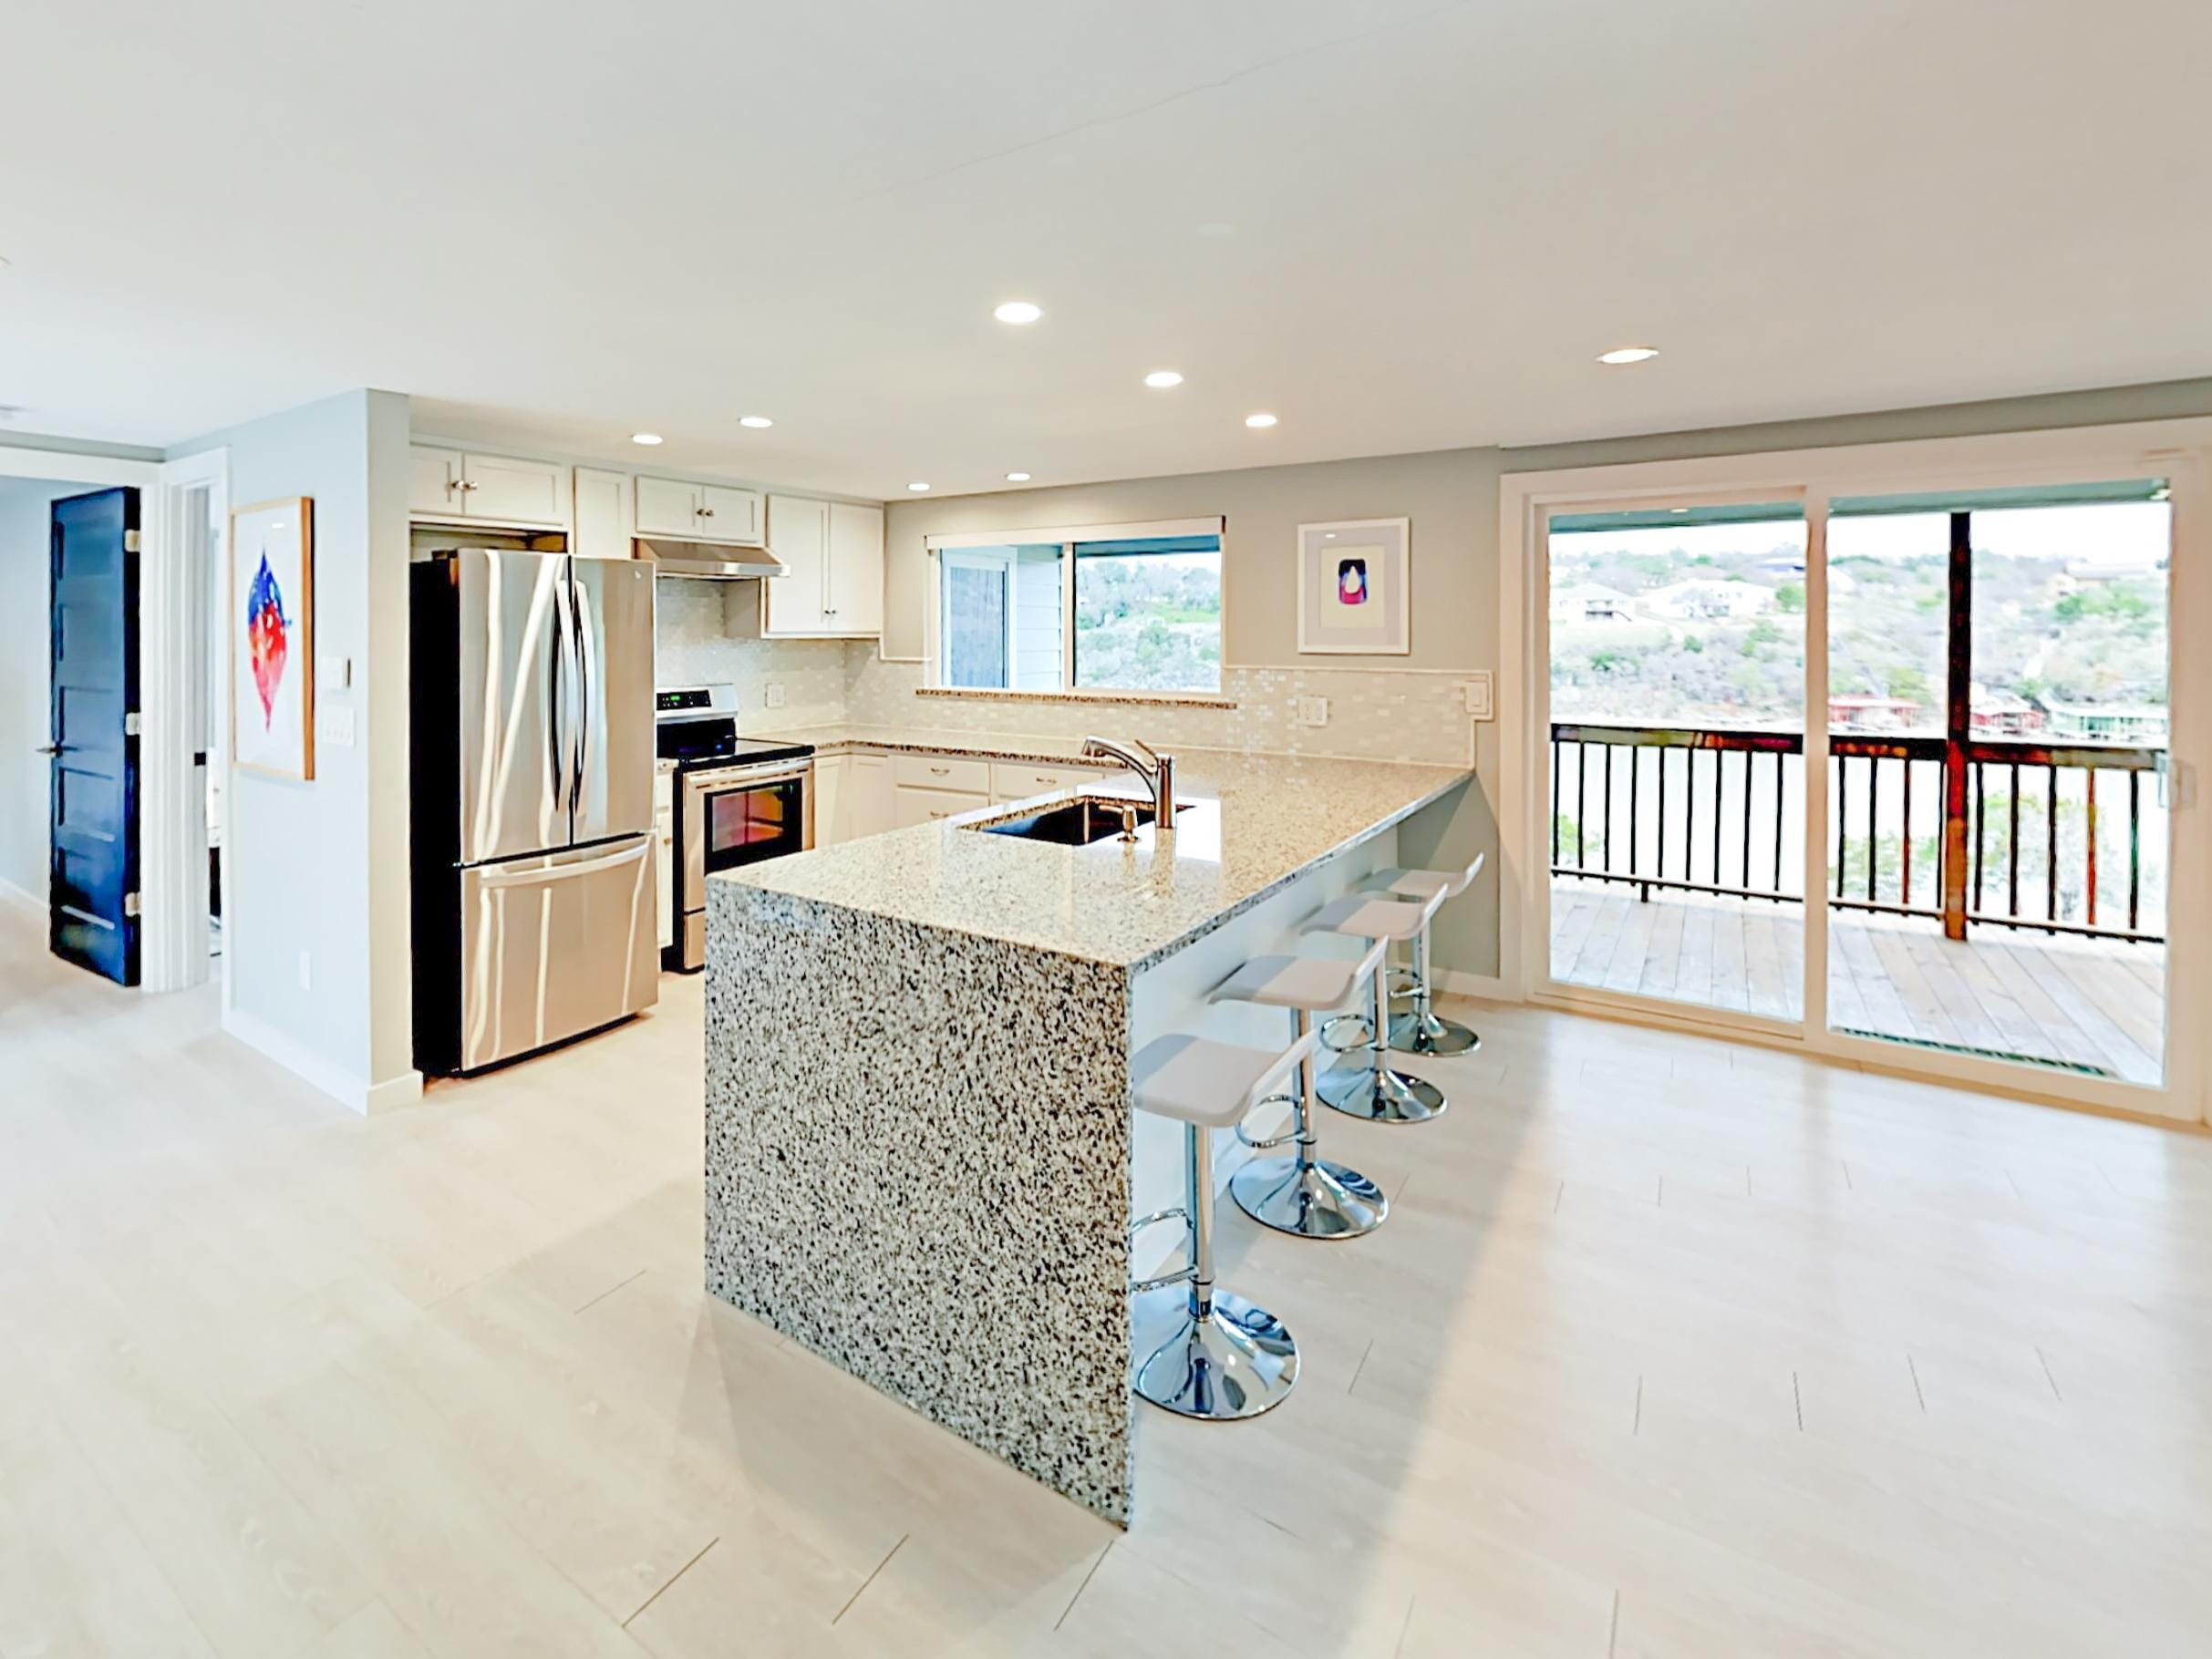 Whip up dinner in the gourmet kitchen, outfitted with sparkling granite countertops and stainless steel appliances.